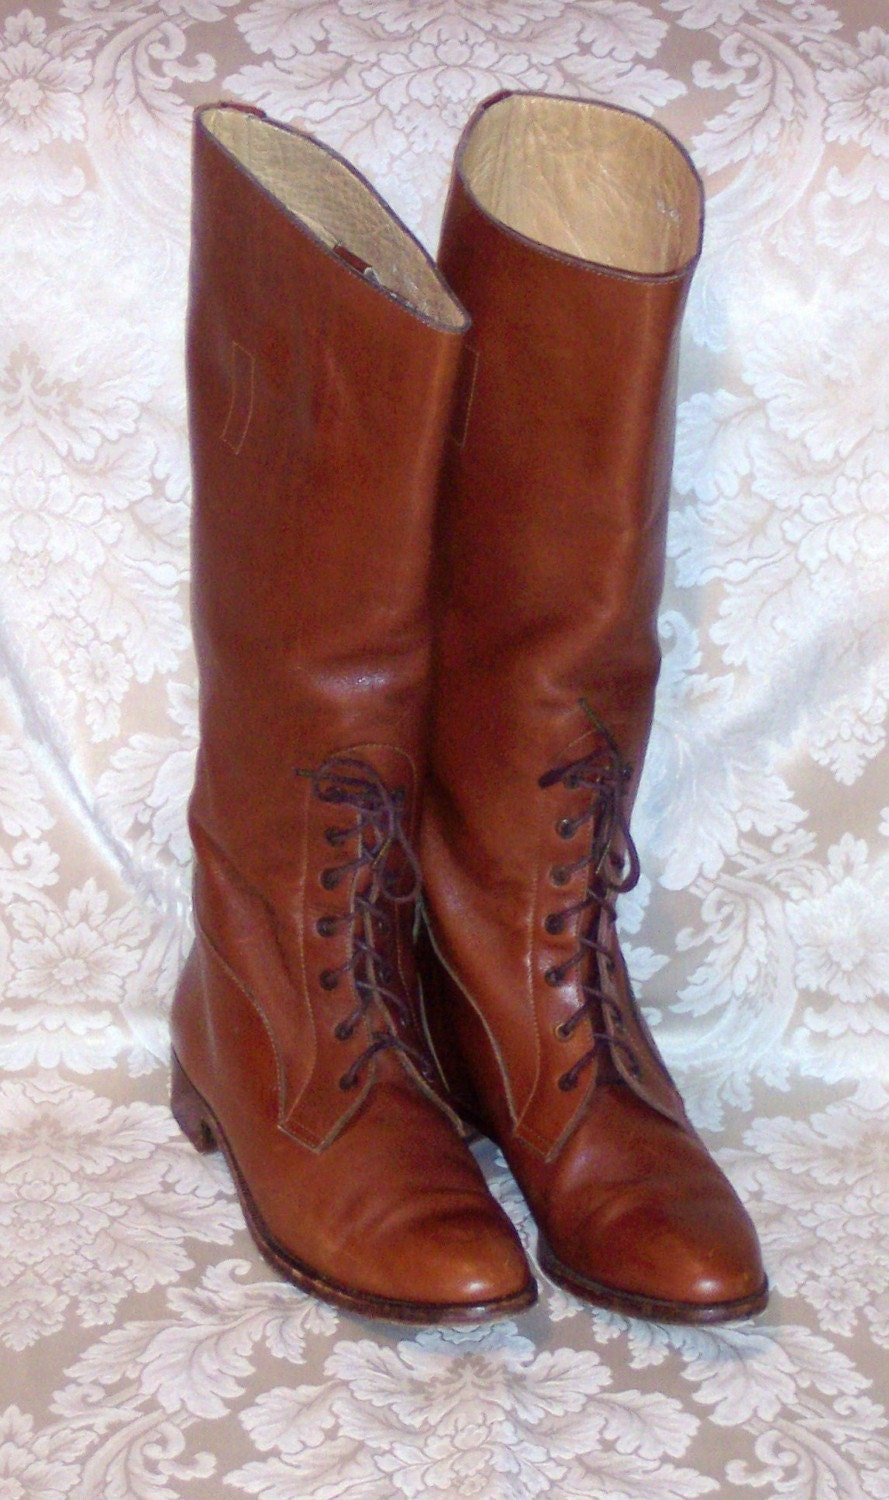 January Sale VINTAGE RALPH LAUREN EQUESTRIAN RIDING BOOTS IN SADDLE BROWN LEATHER AND LACE UP FRONT